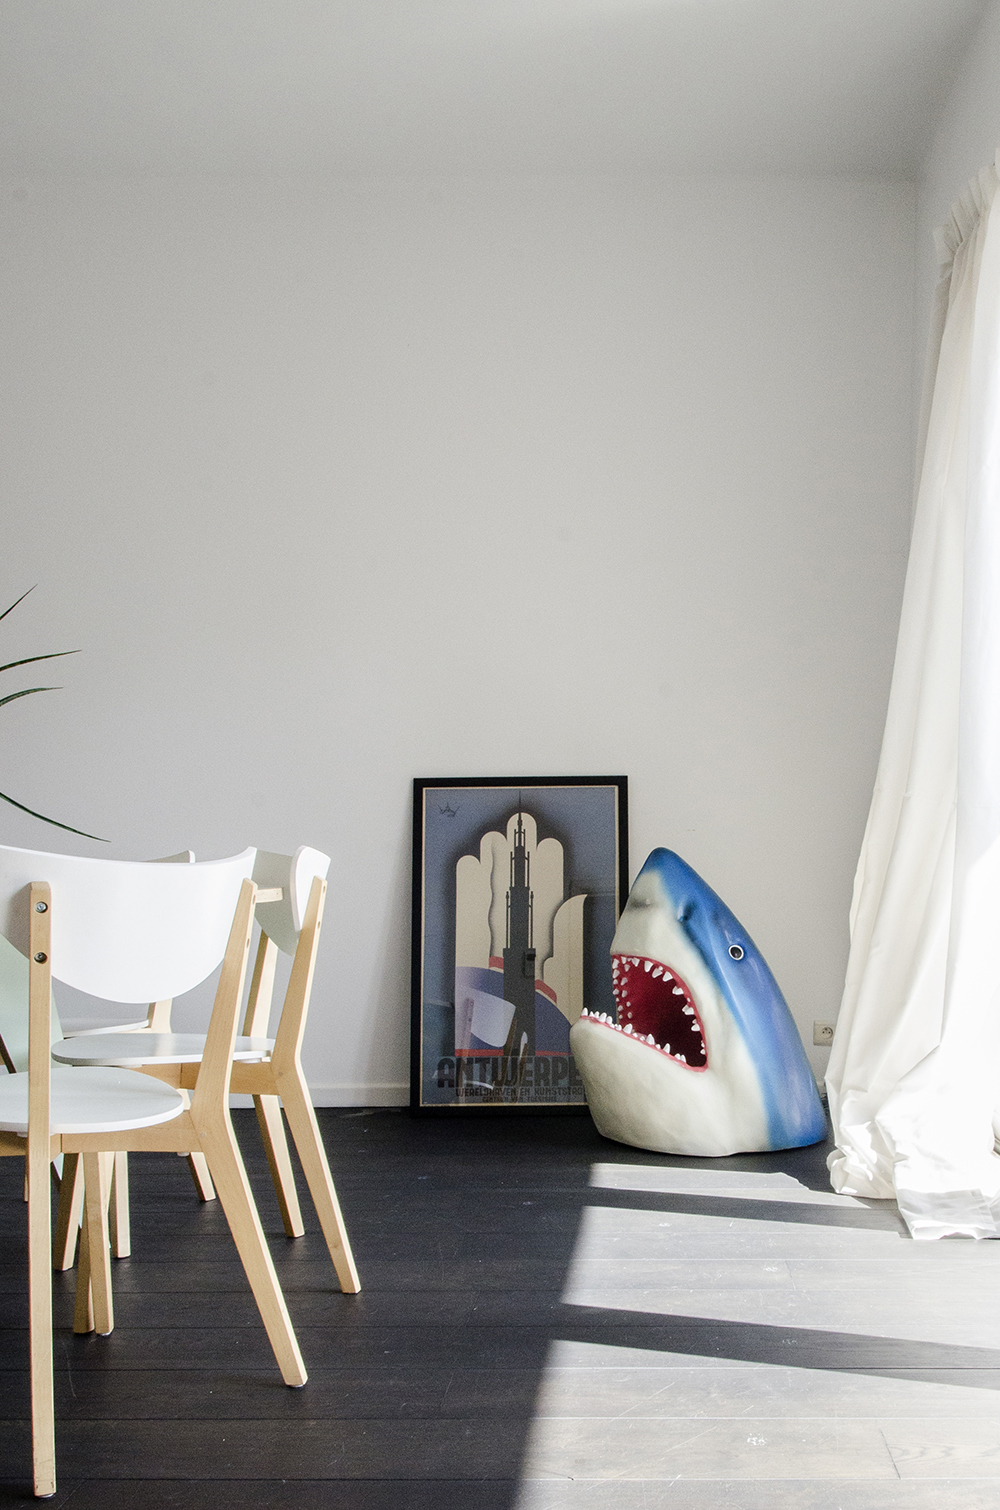 Katrin & Maarten's Dinosaur and Shark Sanctuary // Home tour of a quirky, bright loft in Antwerp Belgium